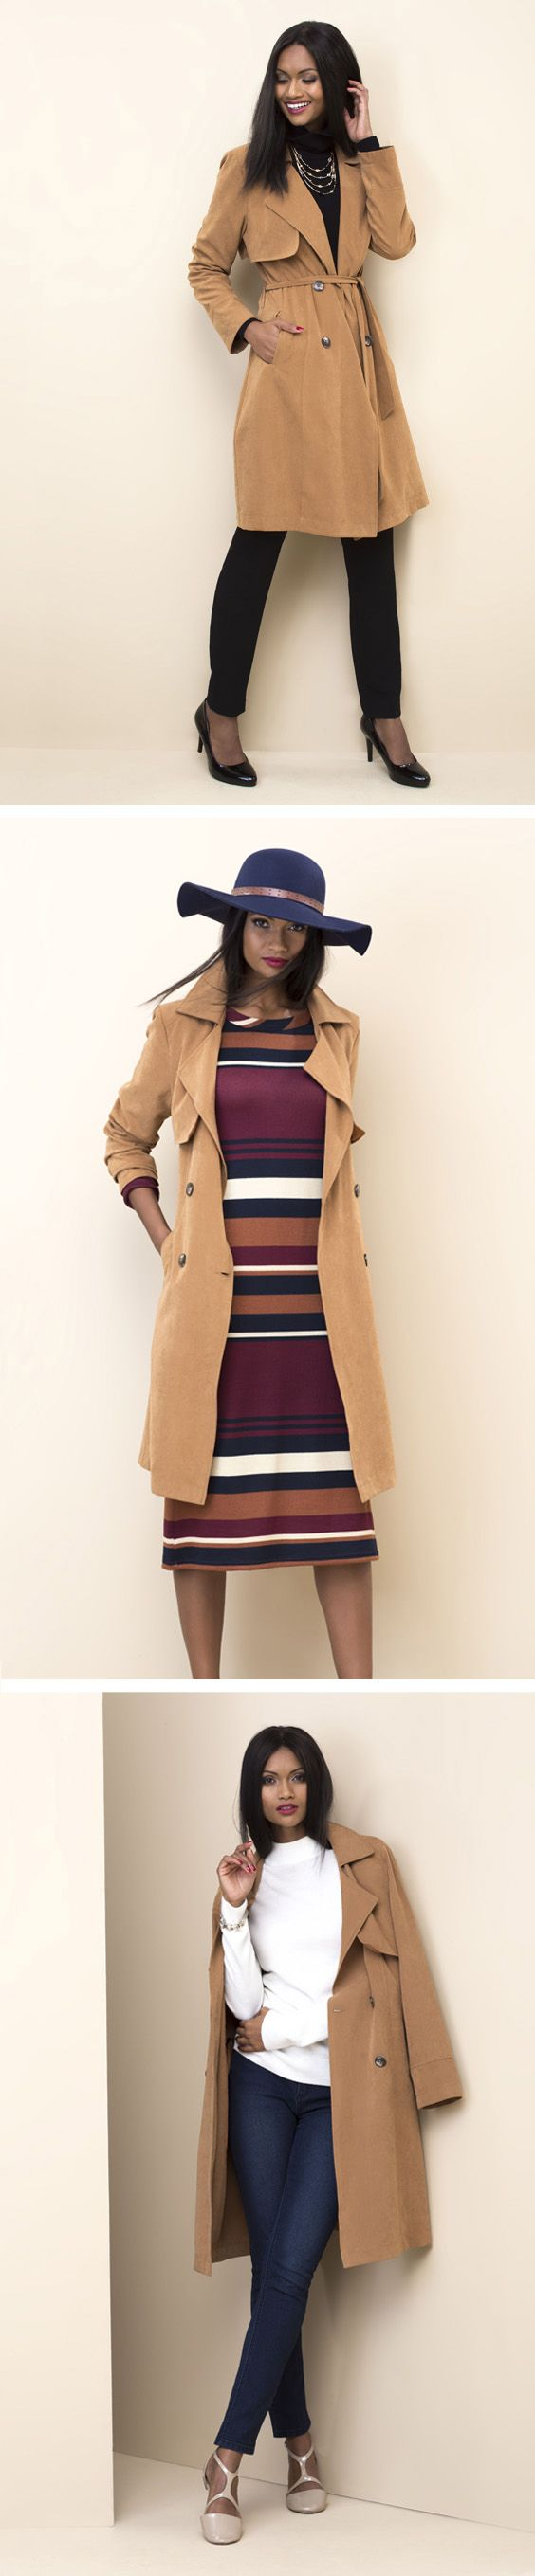 #miladys3ways The versatile trench: The trench makes layering easy (it pairs with everything).